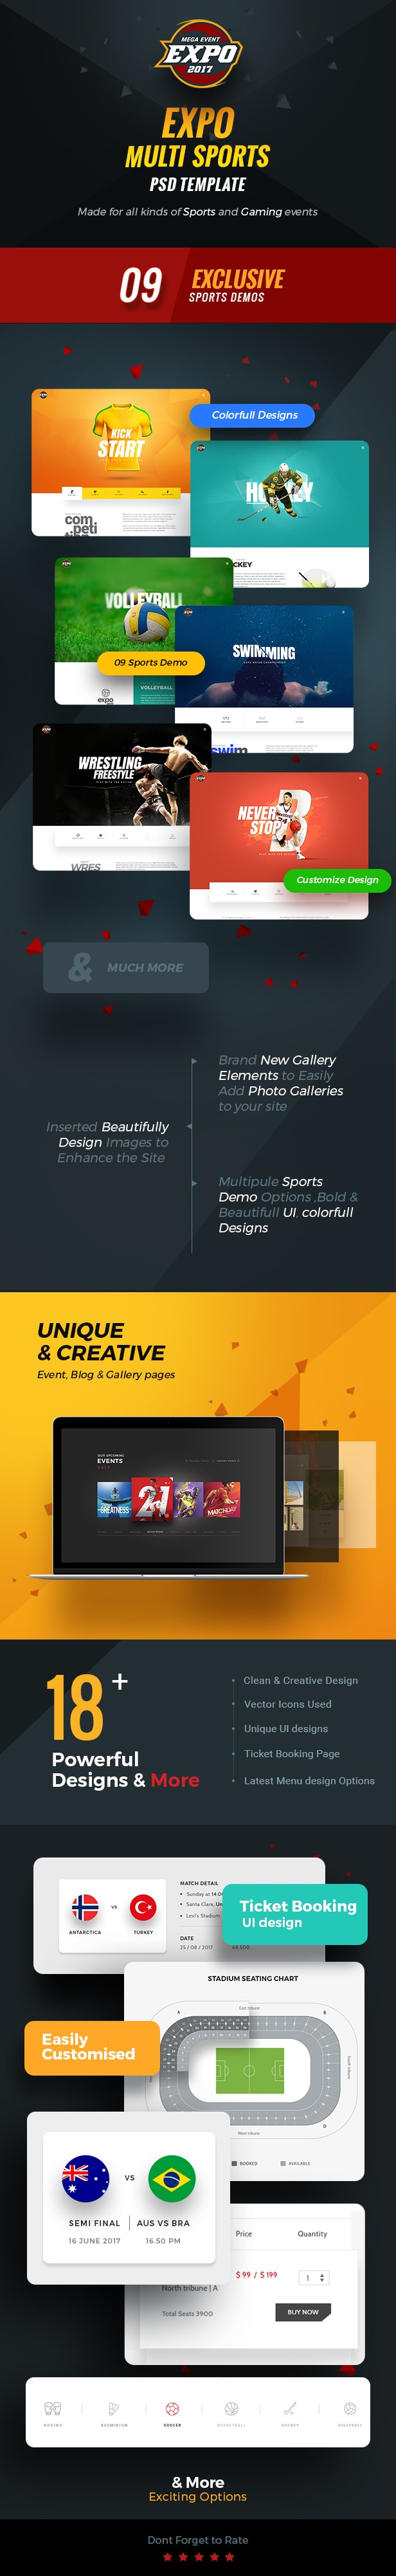 Expo - Multi Sports Event PSD Template - 1